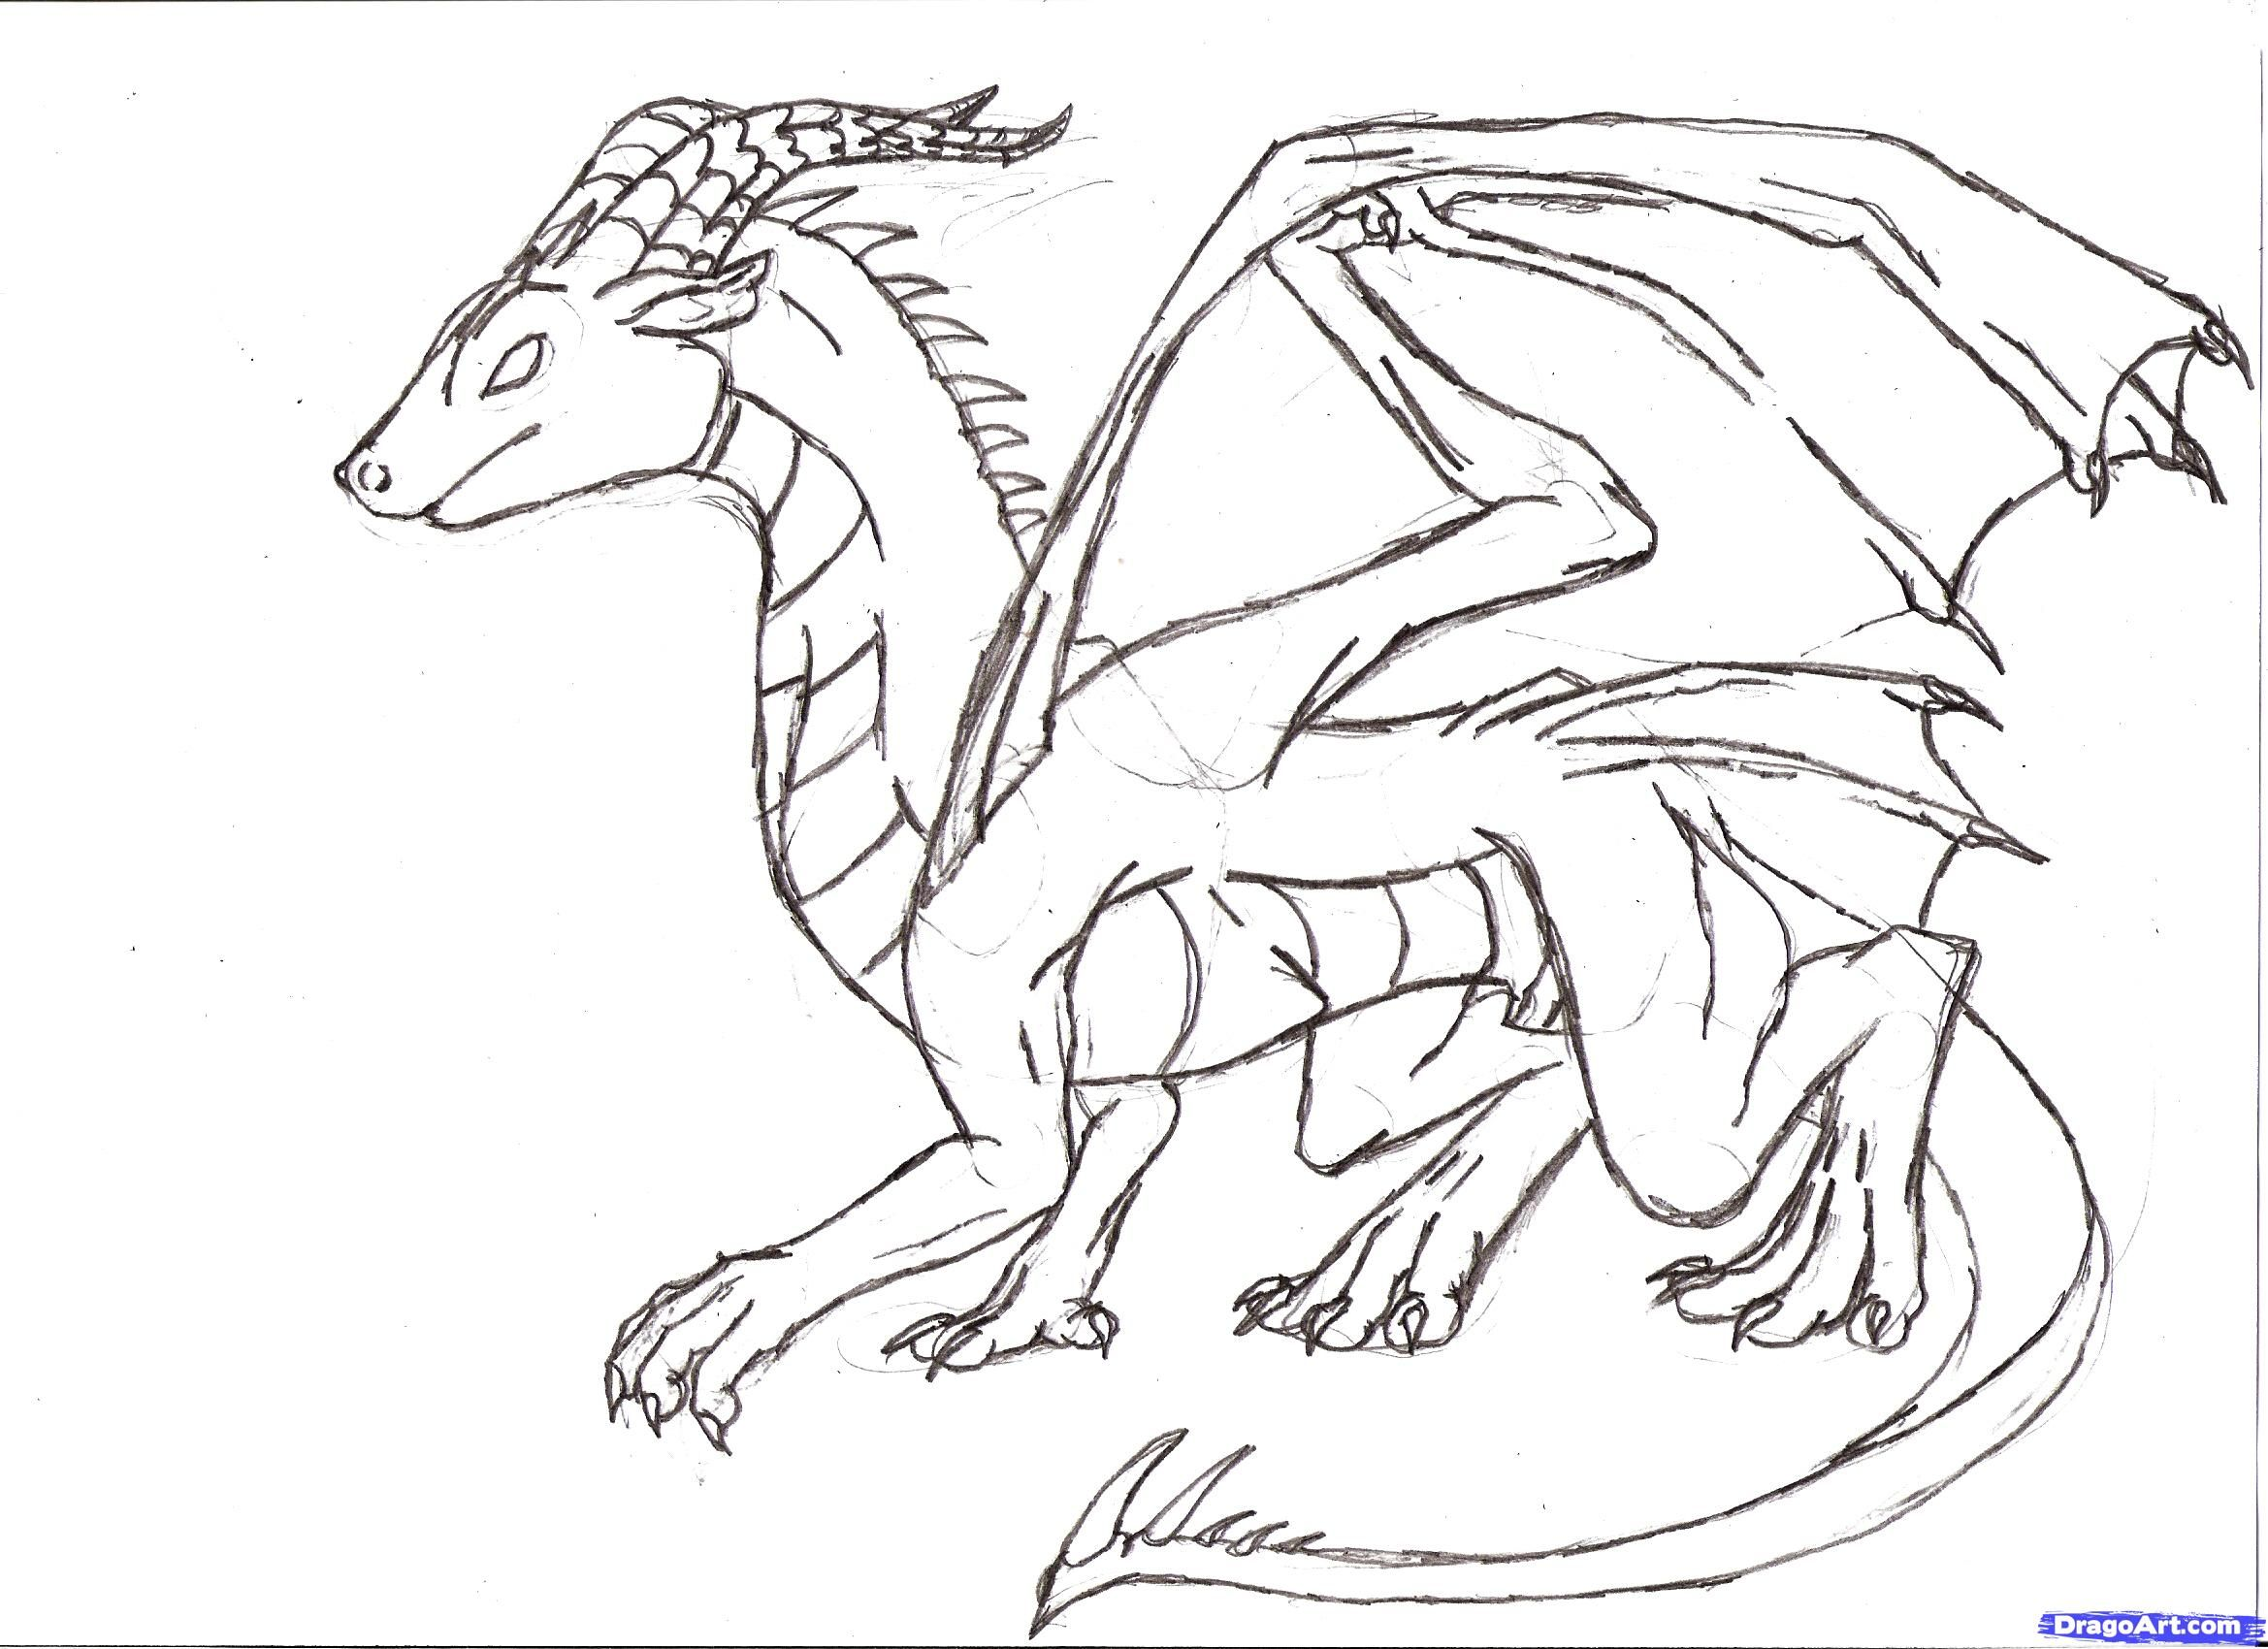 Onlinedrawinglessons ( Discover How To Draw Dragons Step